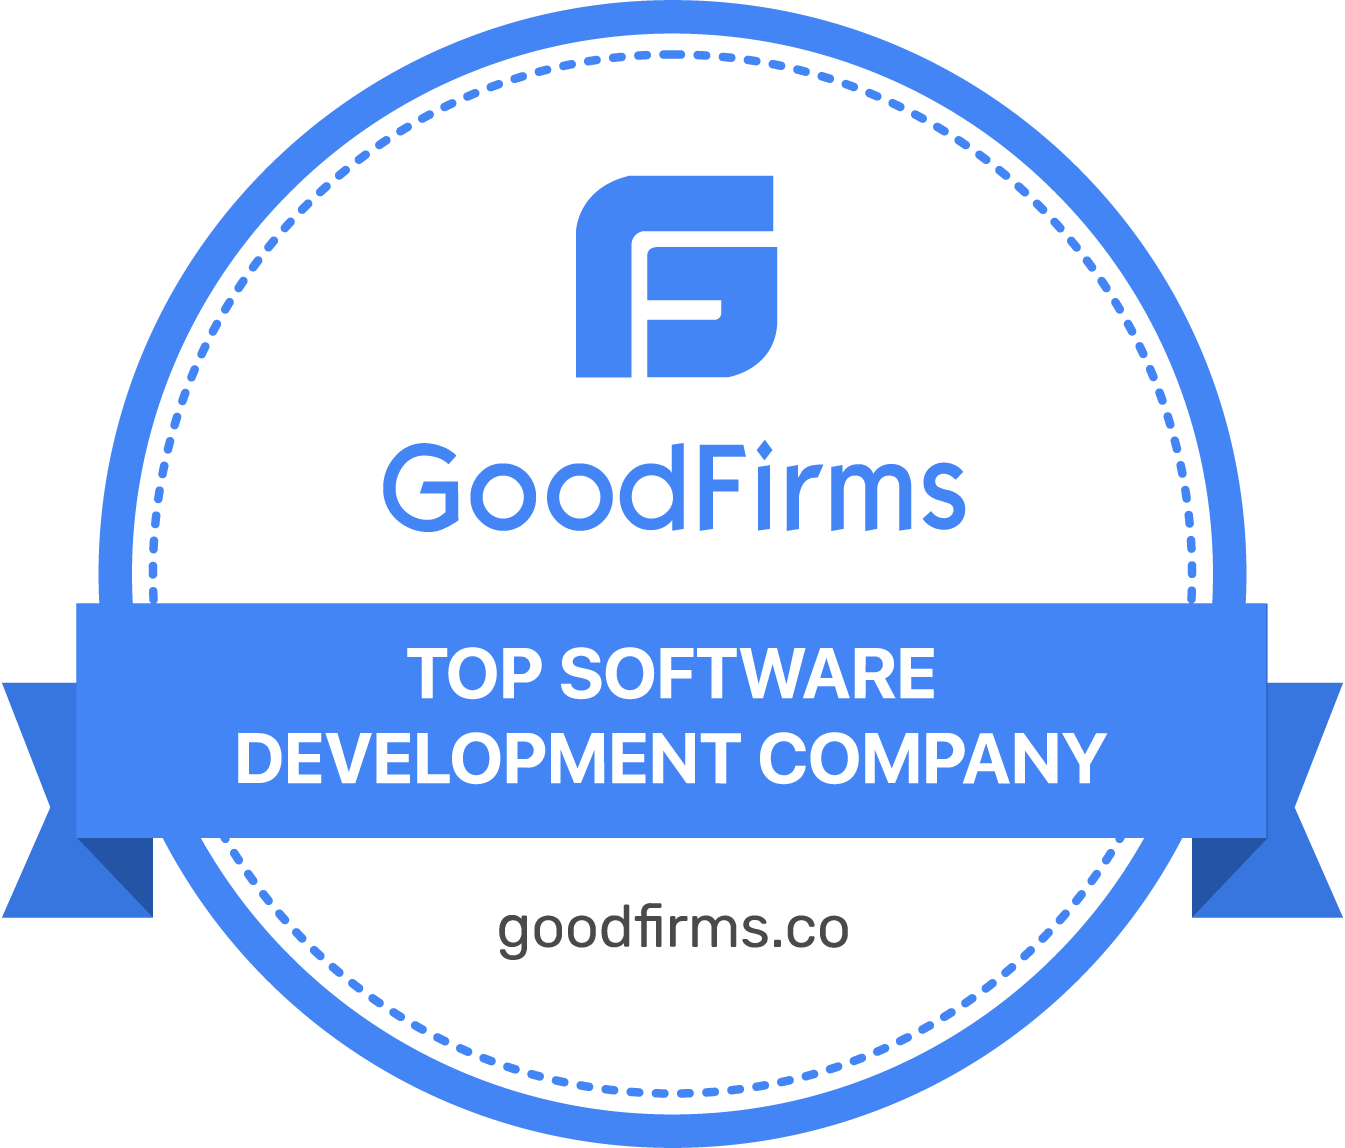 Altar.io - Goodfirms Award